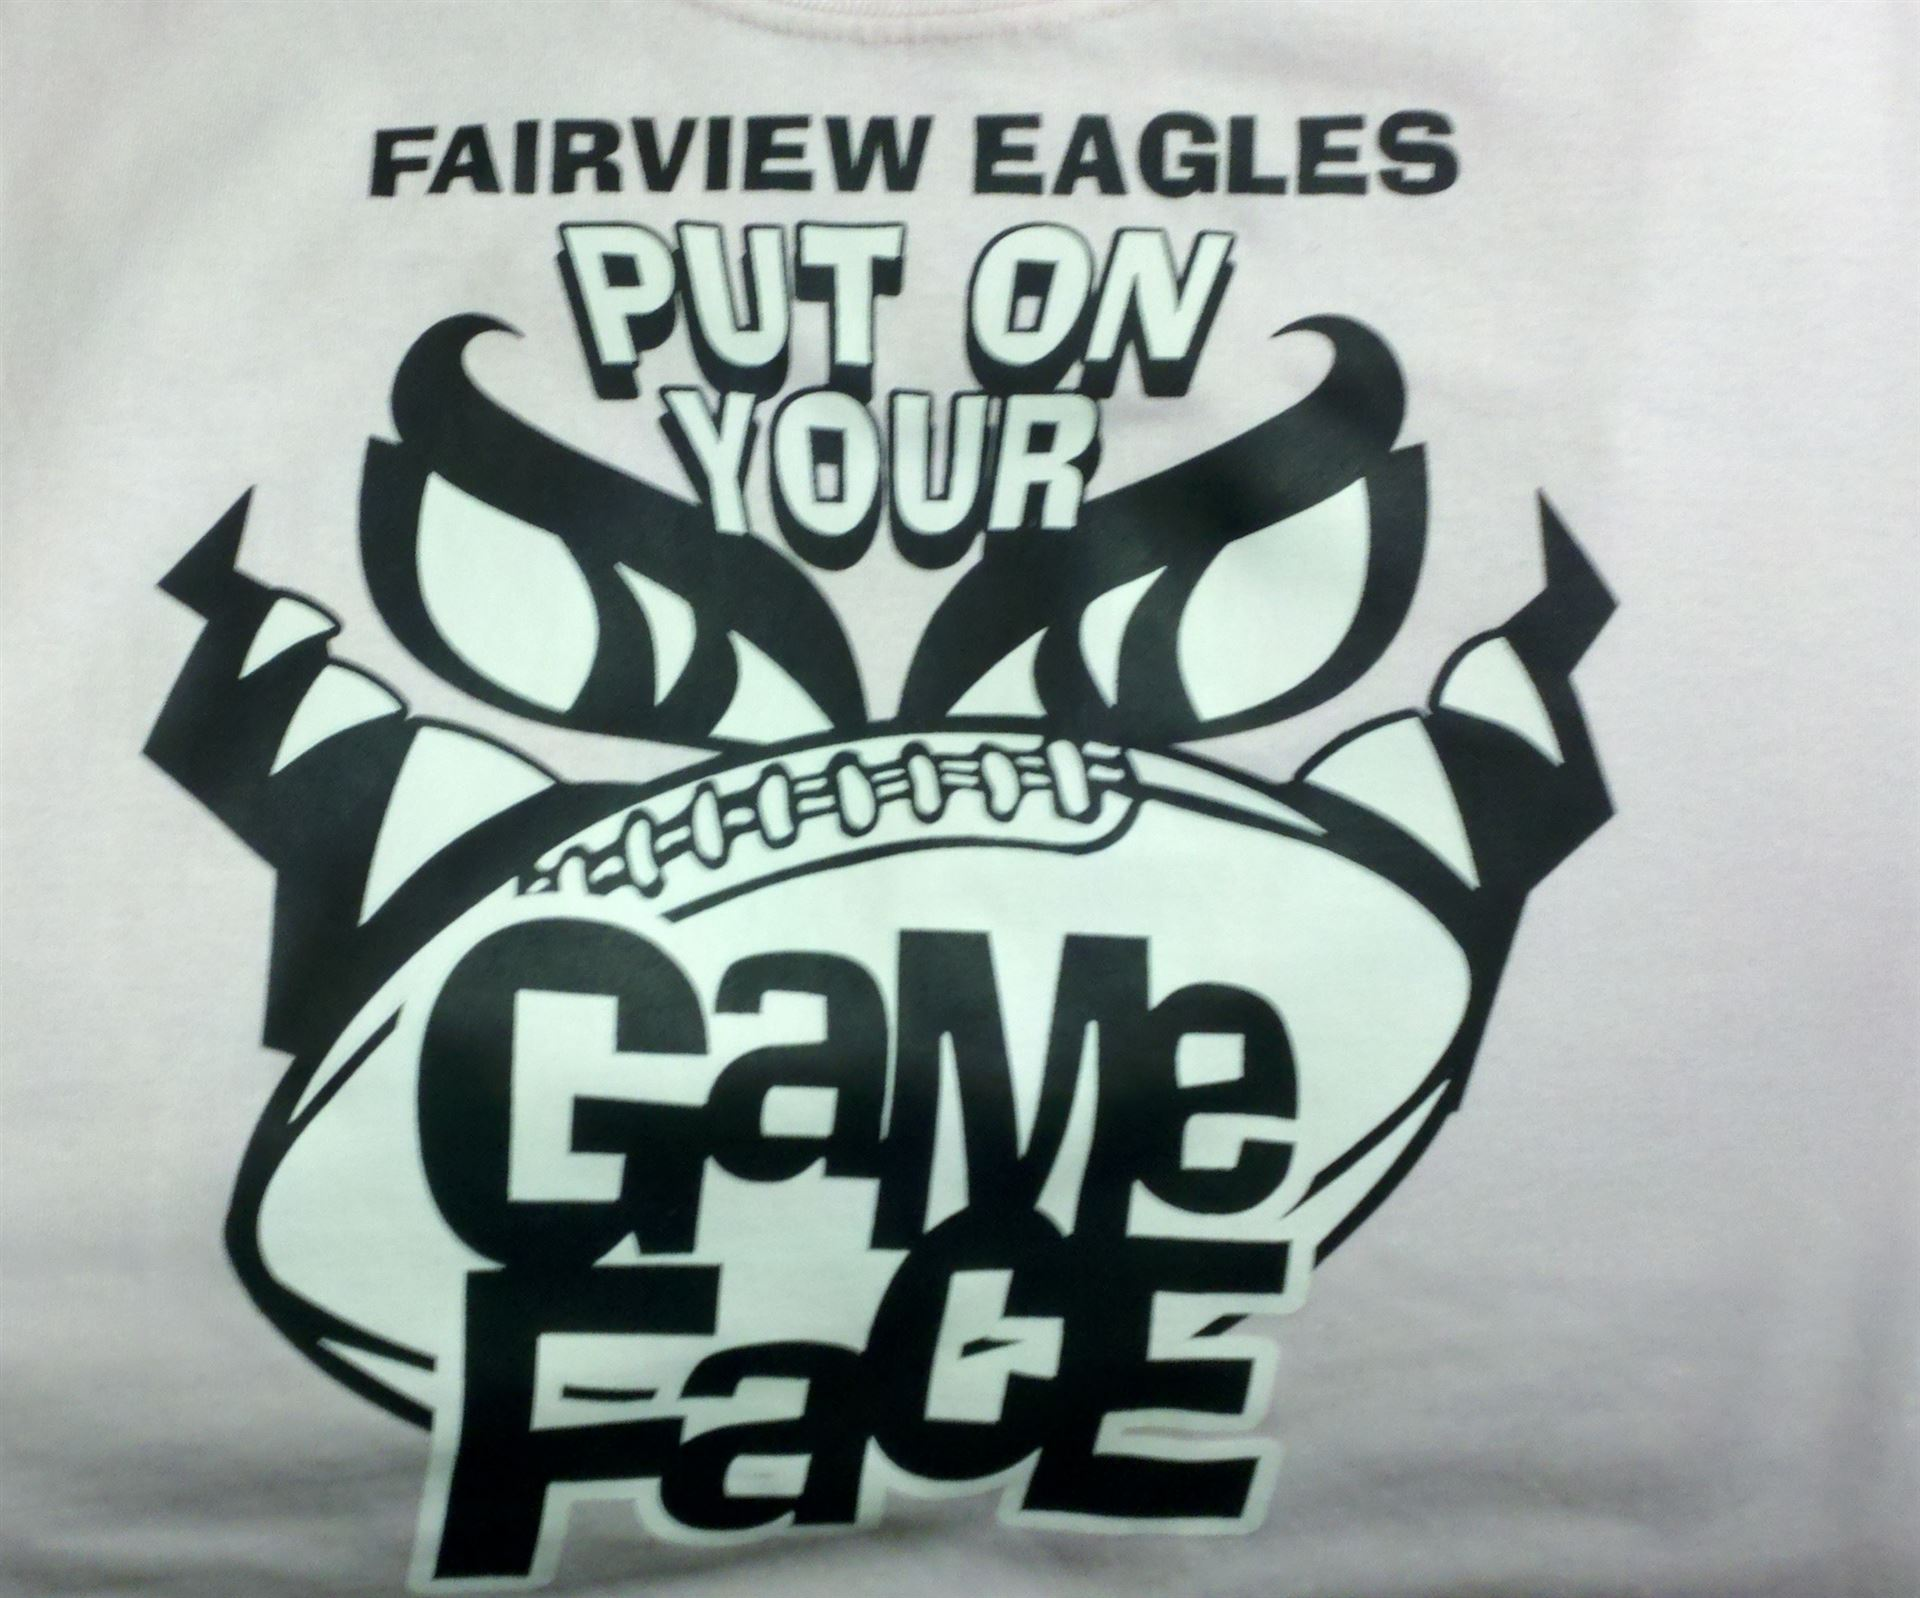 Fairview shirt design 19